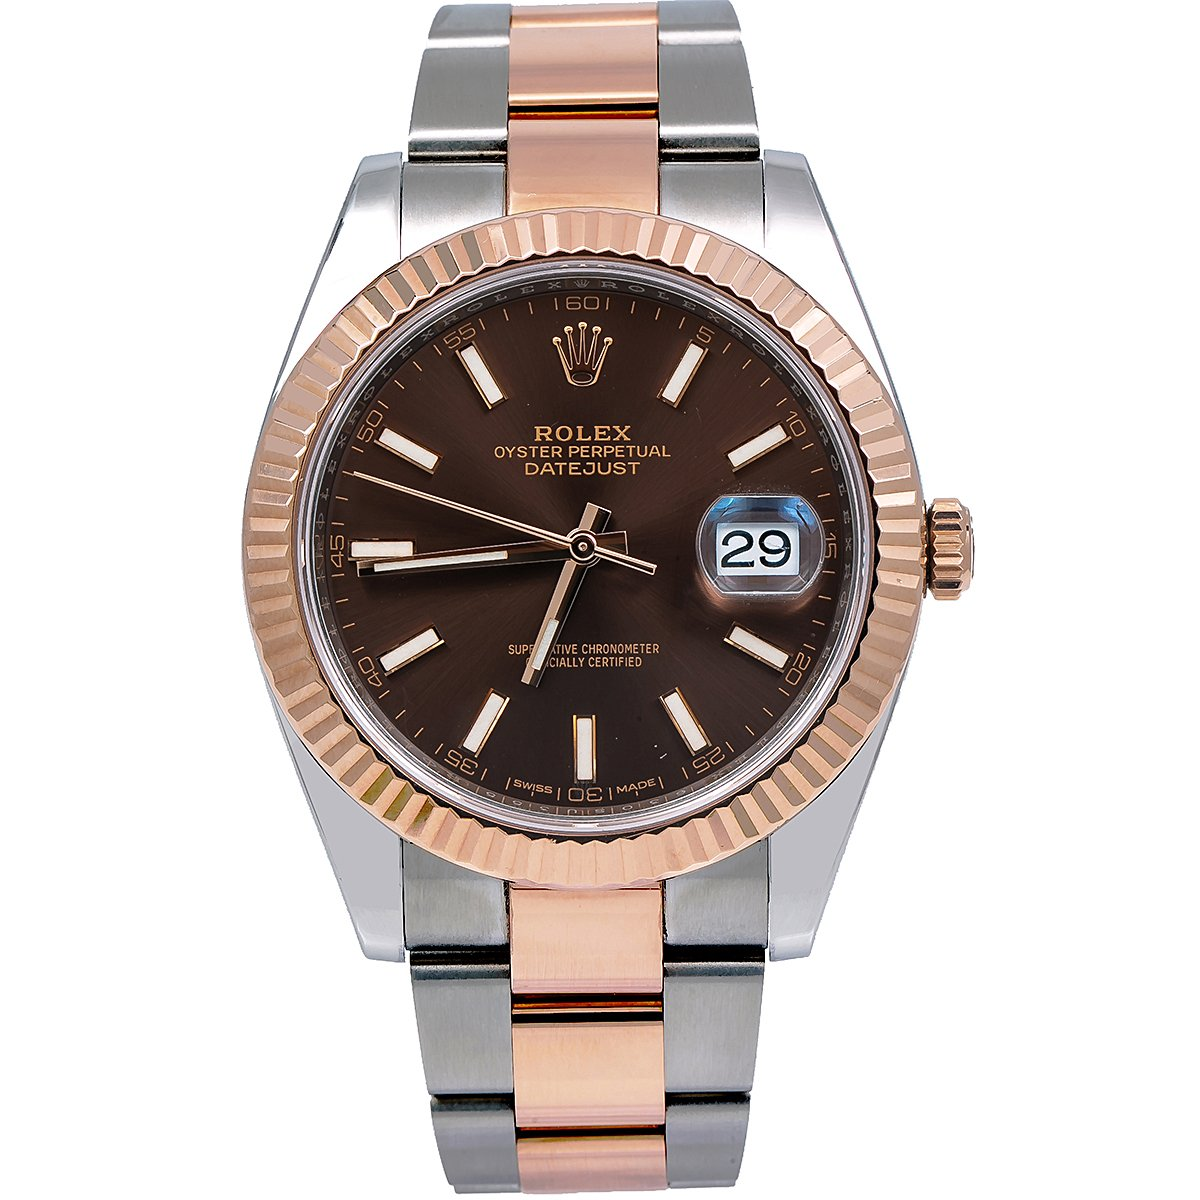 Rolex  Datejust II 126331 41MM Brown Dial With Two Tone Oyster Bracelet